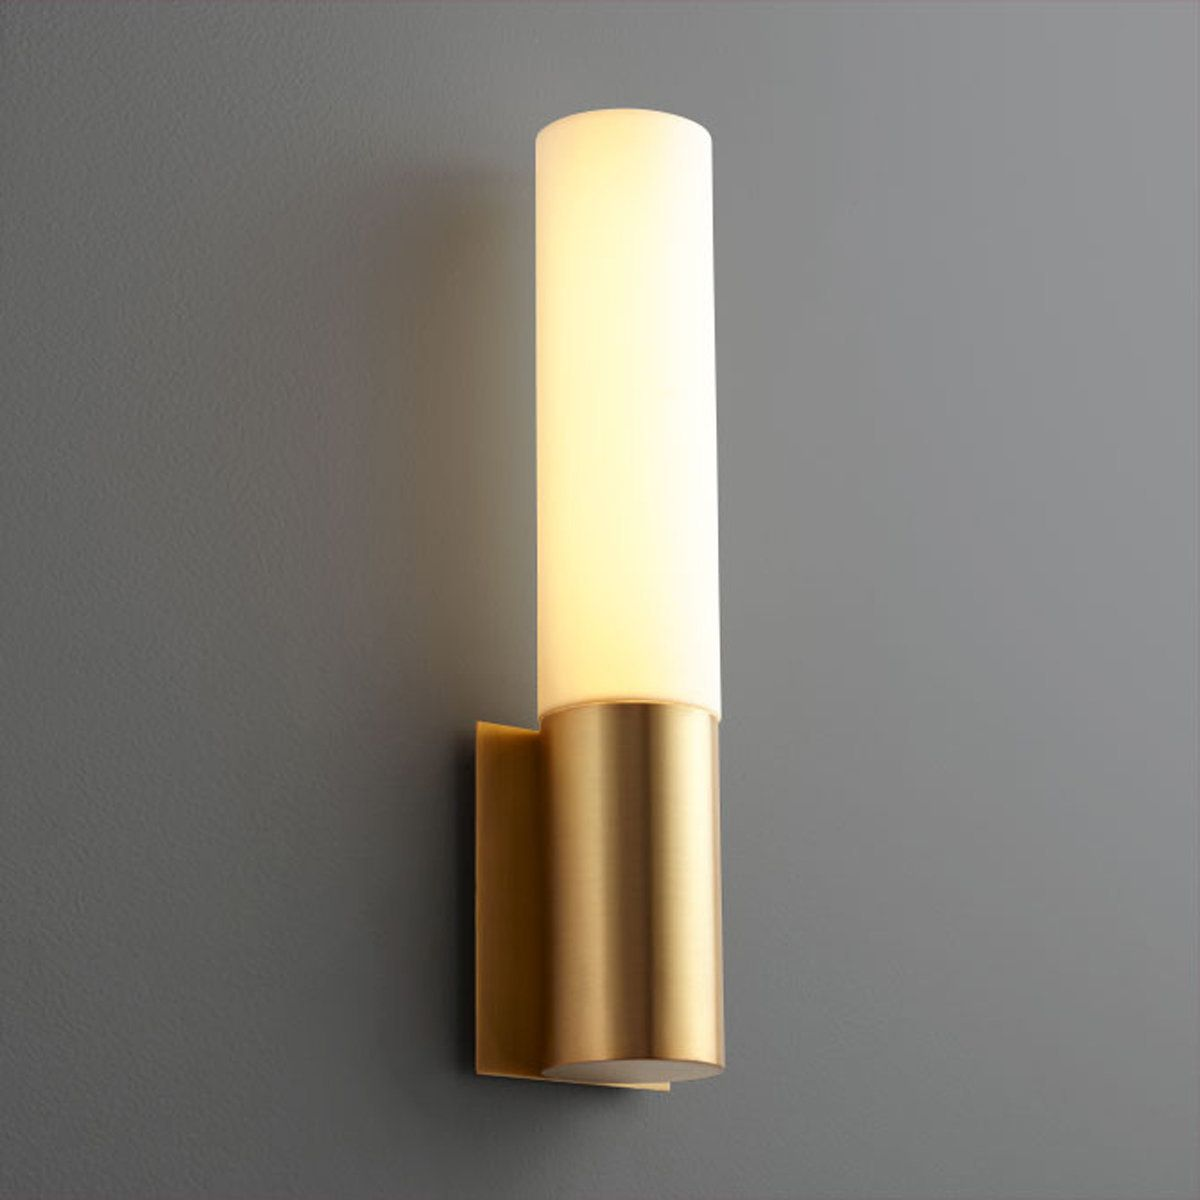 Linear Cylinder Led Sconce Sconces Wall Lighting Design Glass Diffuser